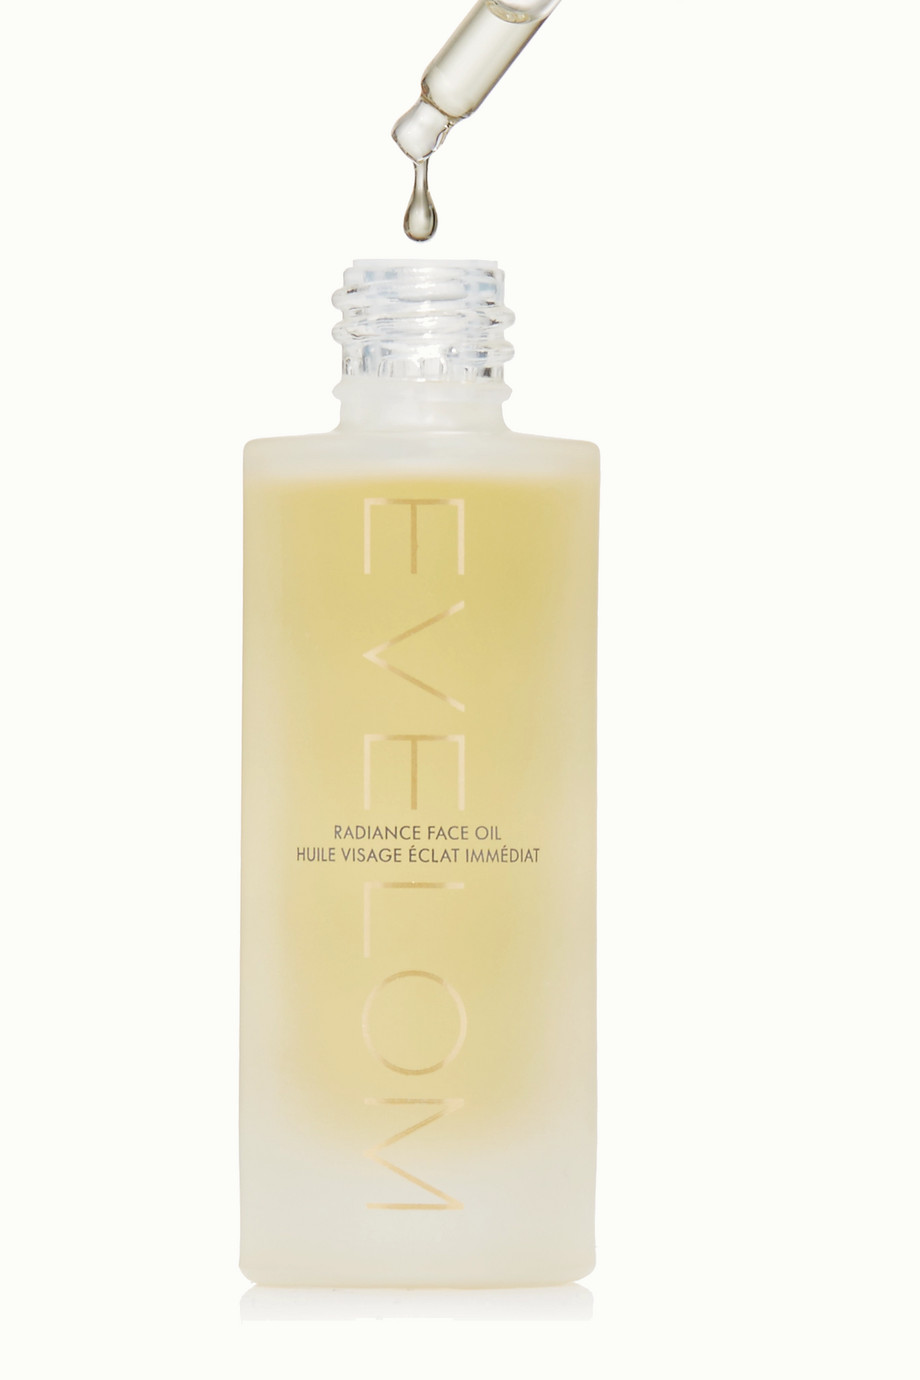 Eve Lom Radiance Face Oil, 30ml